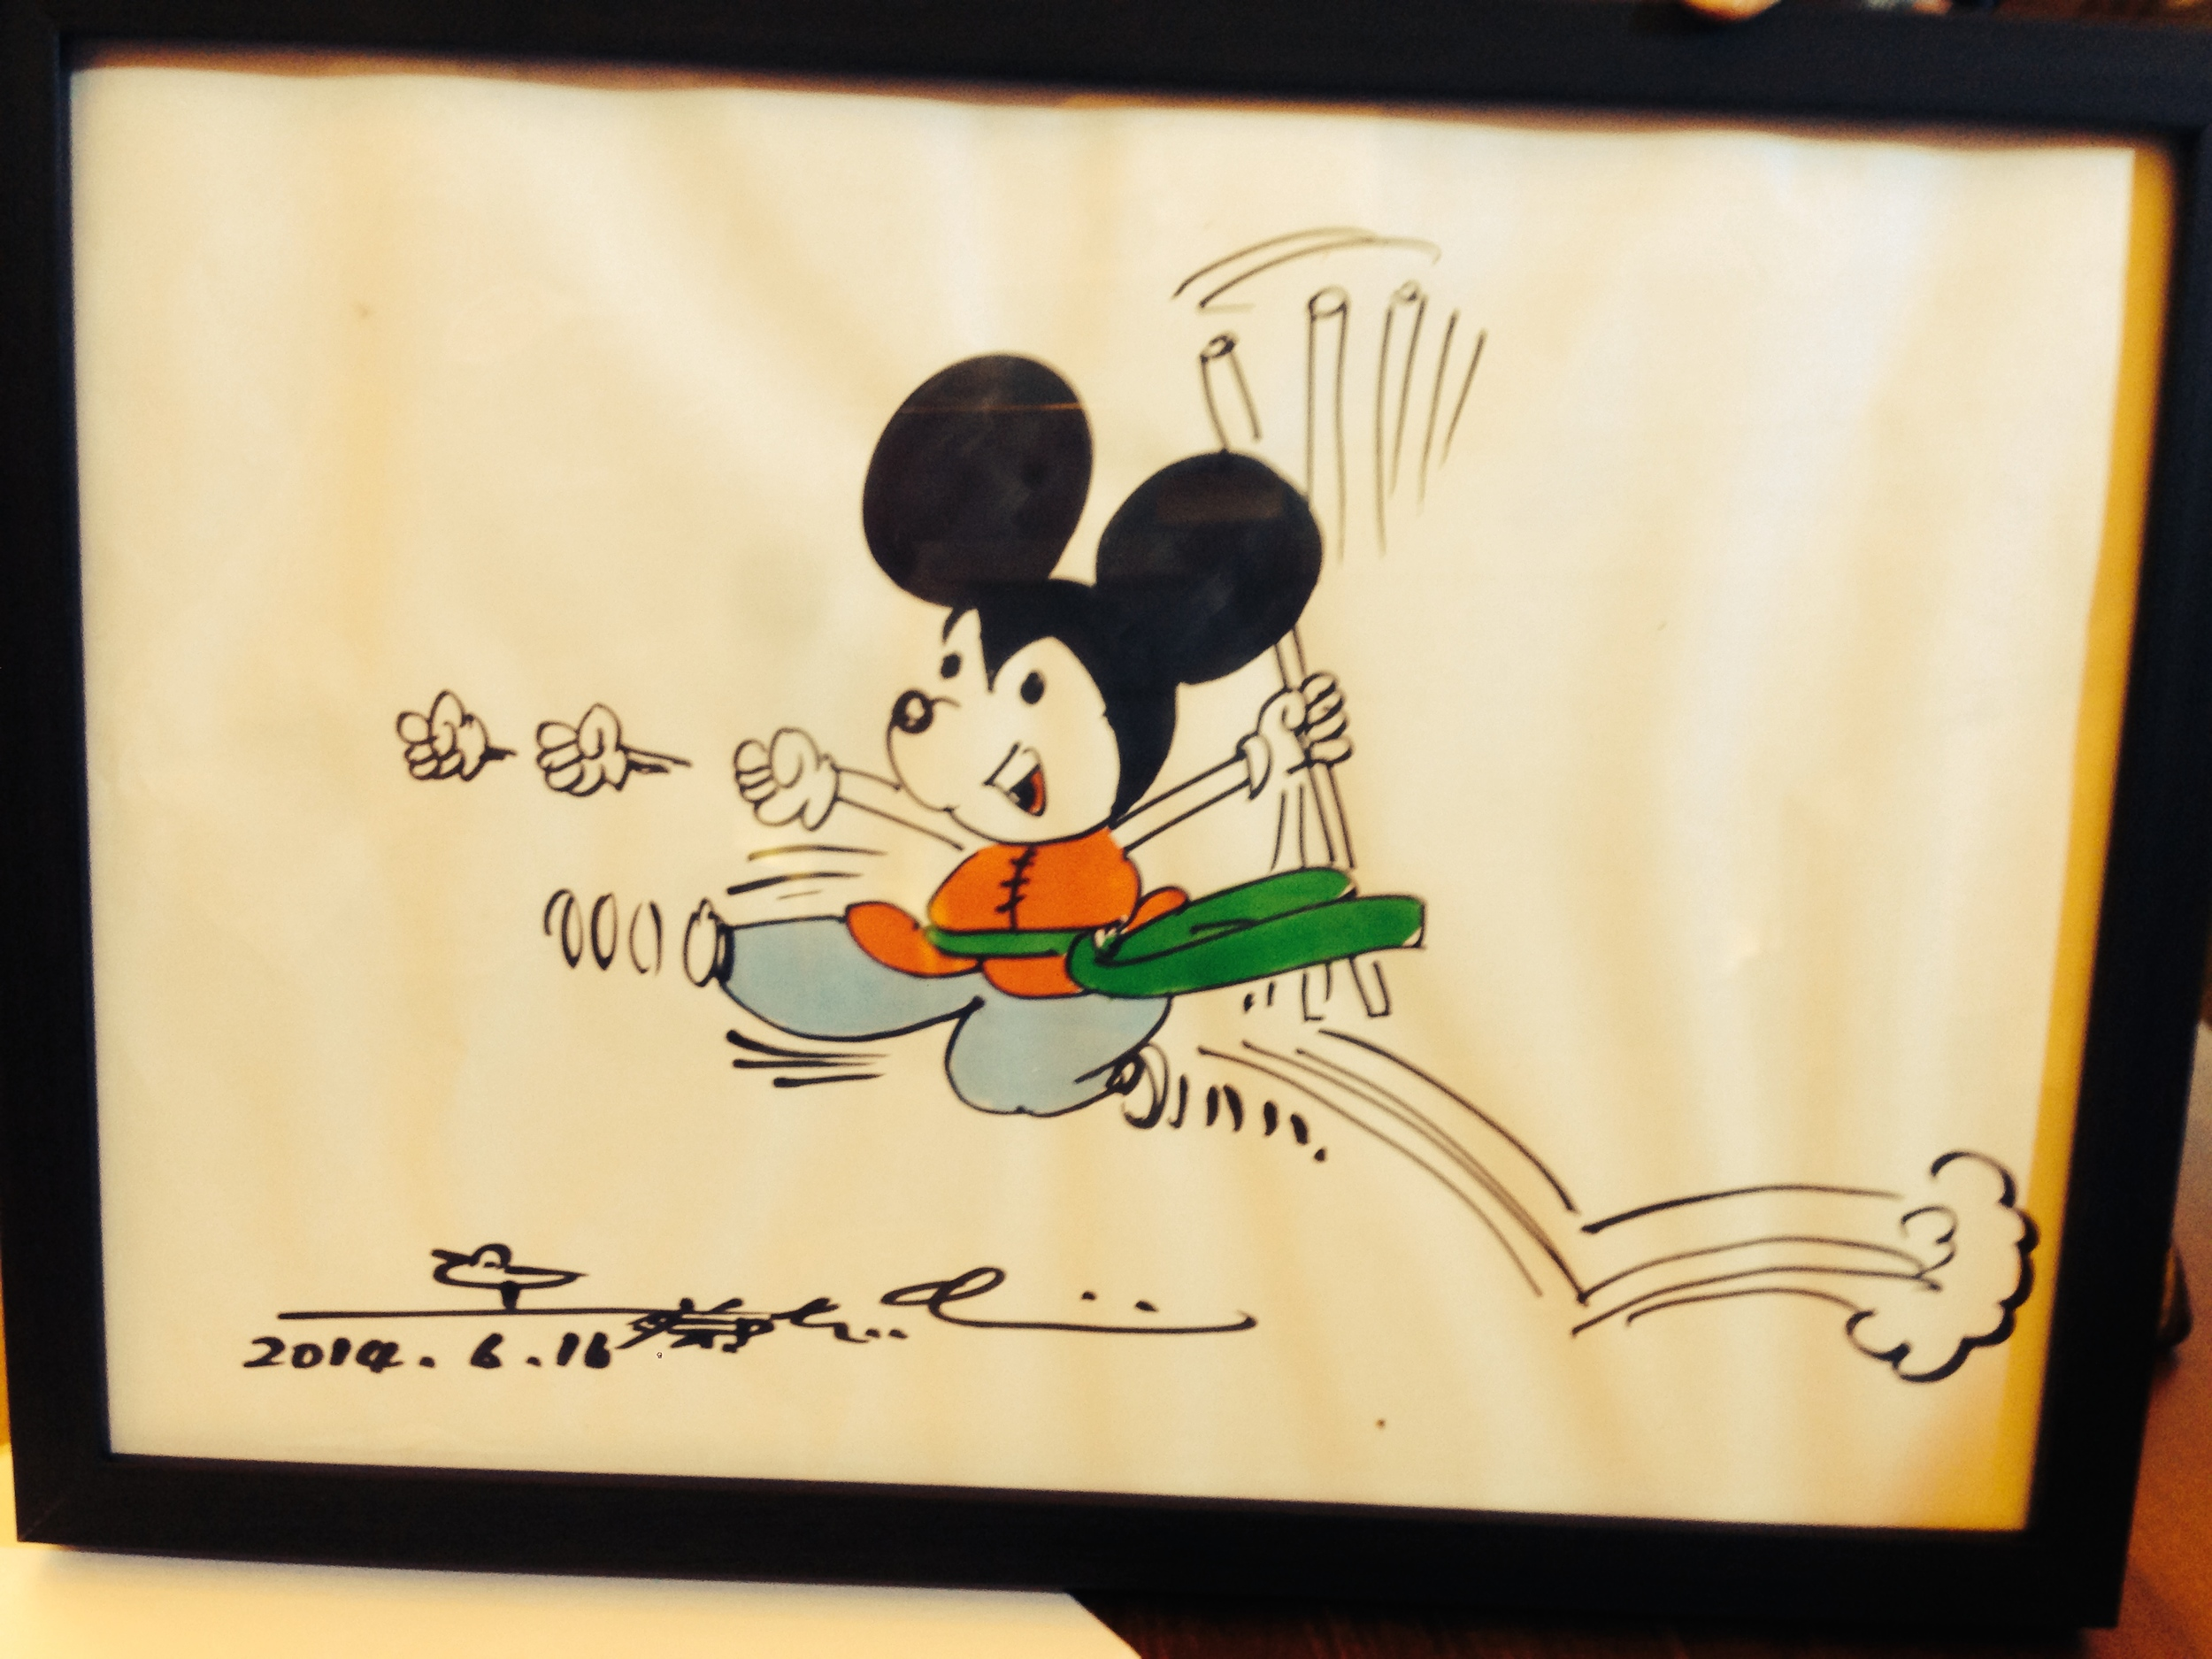 Tsai, Chin Chung's Mickey,  drawn on camera and given as a prize to lucky contest winners.